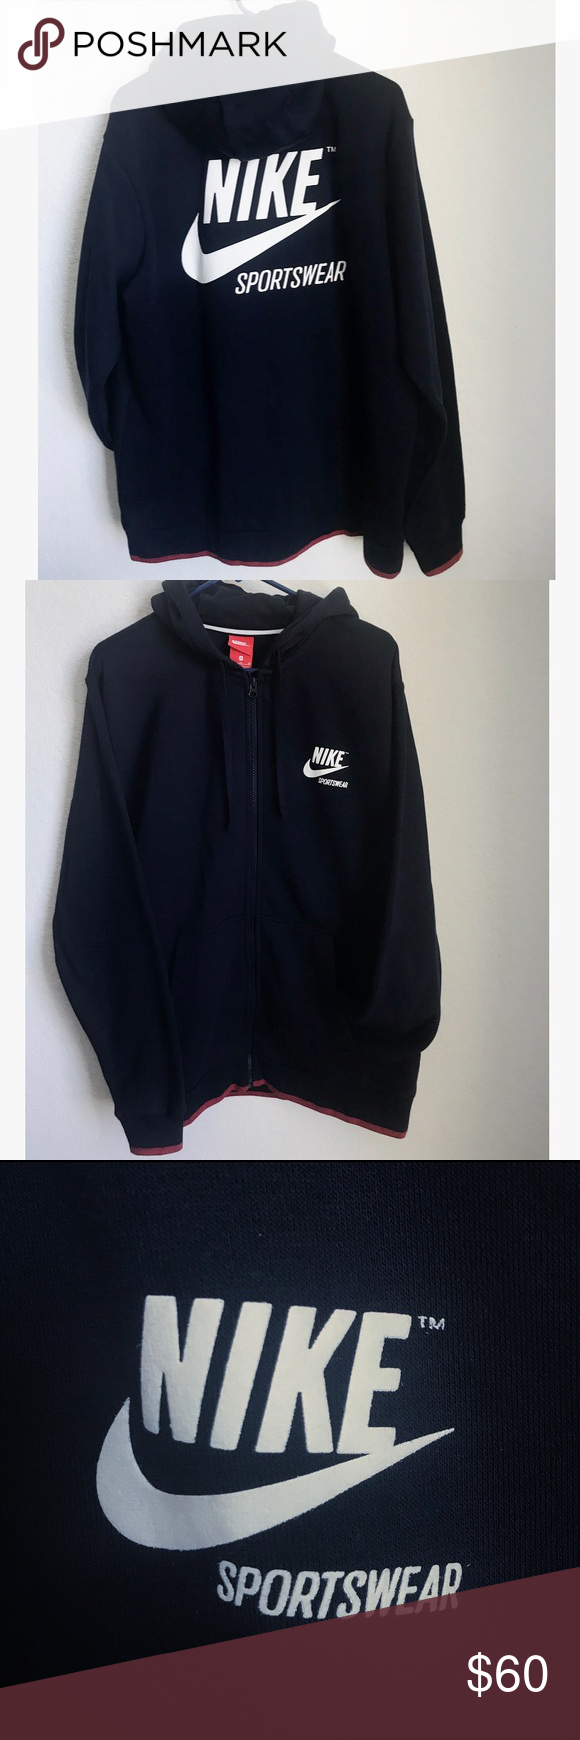 release date 2504d 2eed7 Nike Sportswear Hoodie Nike Sportswear Full Zip Hoodie. Color is Navy Blue.  Brand New With No Tags Nike Shirts Sweatshirts   Hoodies